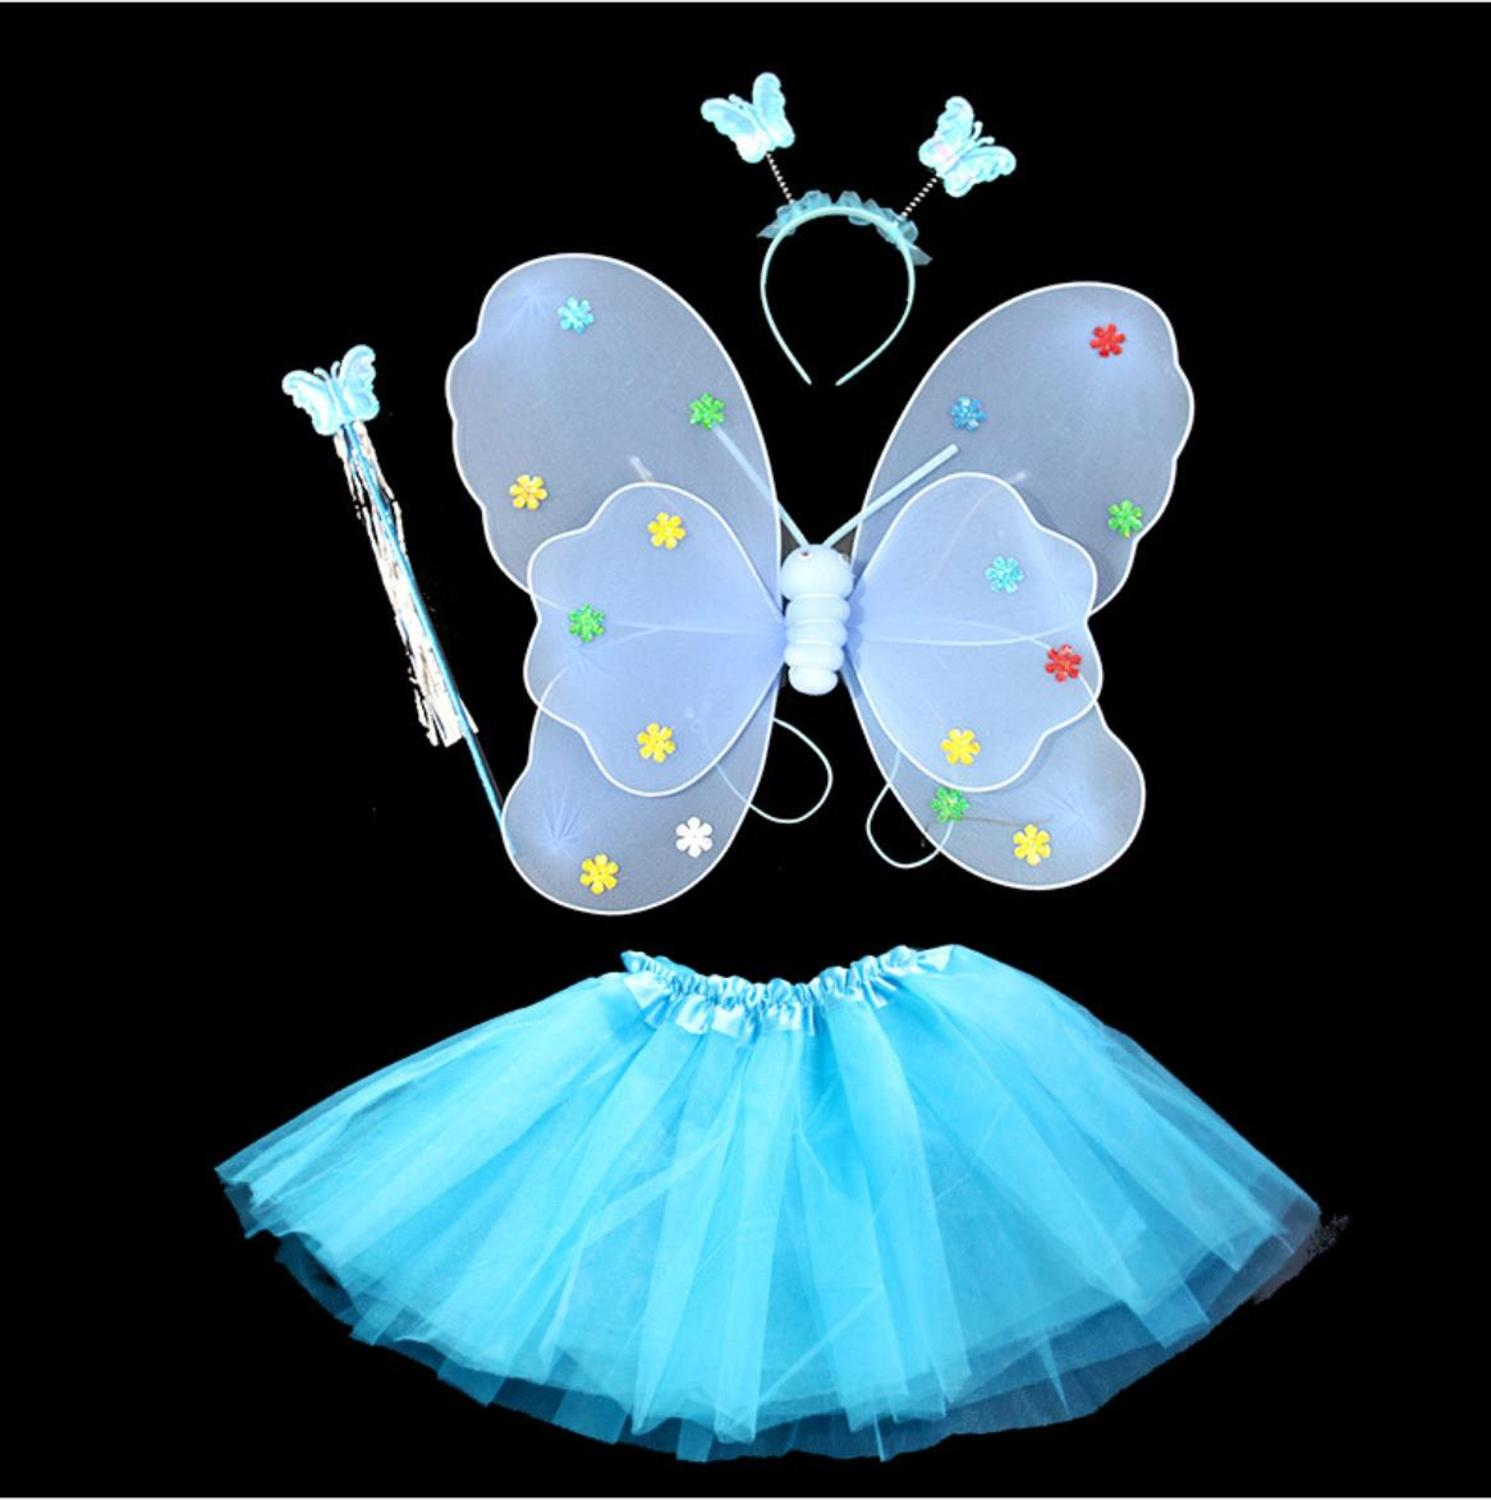 Halloween Cosplay Girl Dress Butterfly Style Cosplay Fancy Baby Girls Birthday Party Dresses Kids Cosplay Halloween Costume